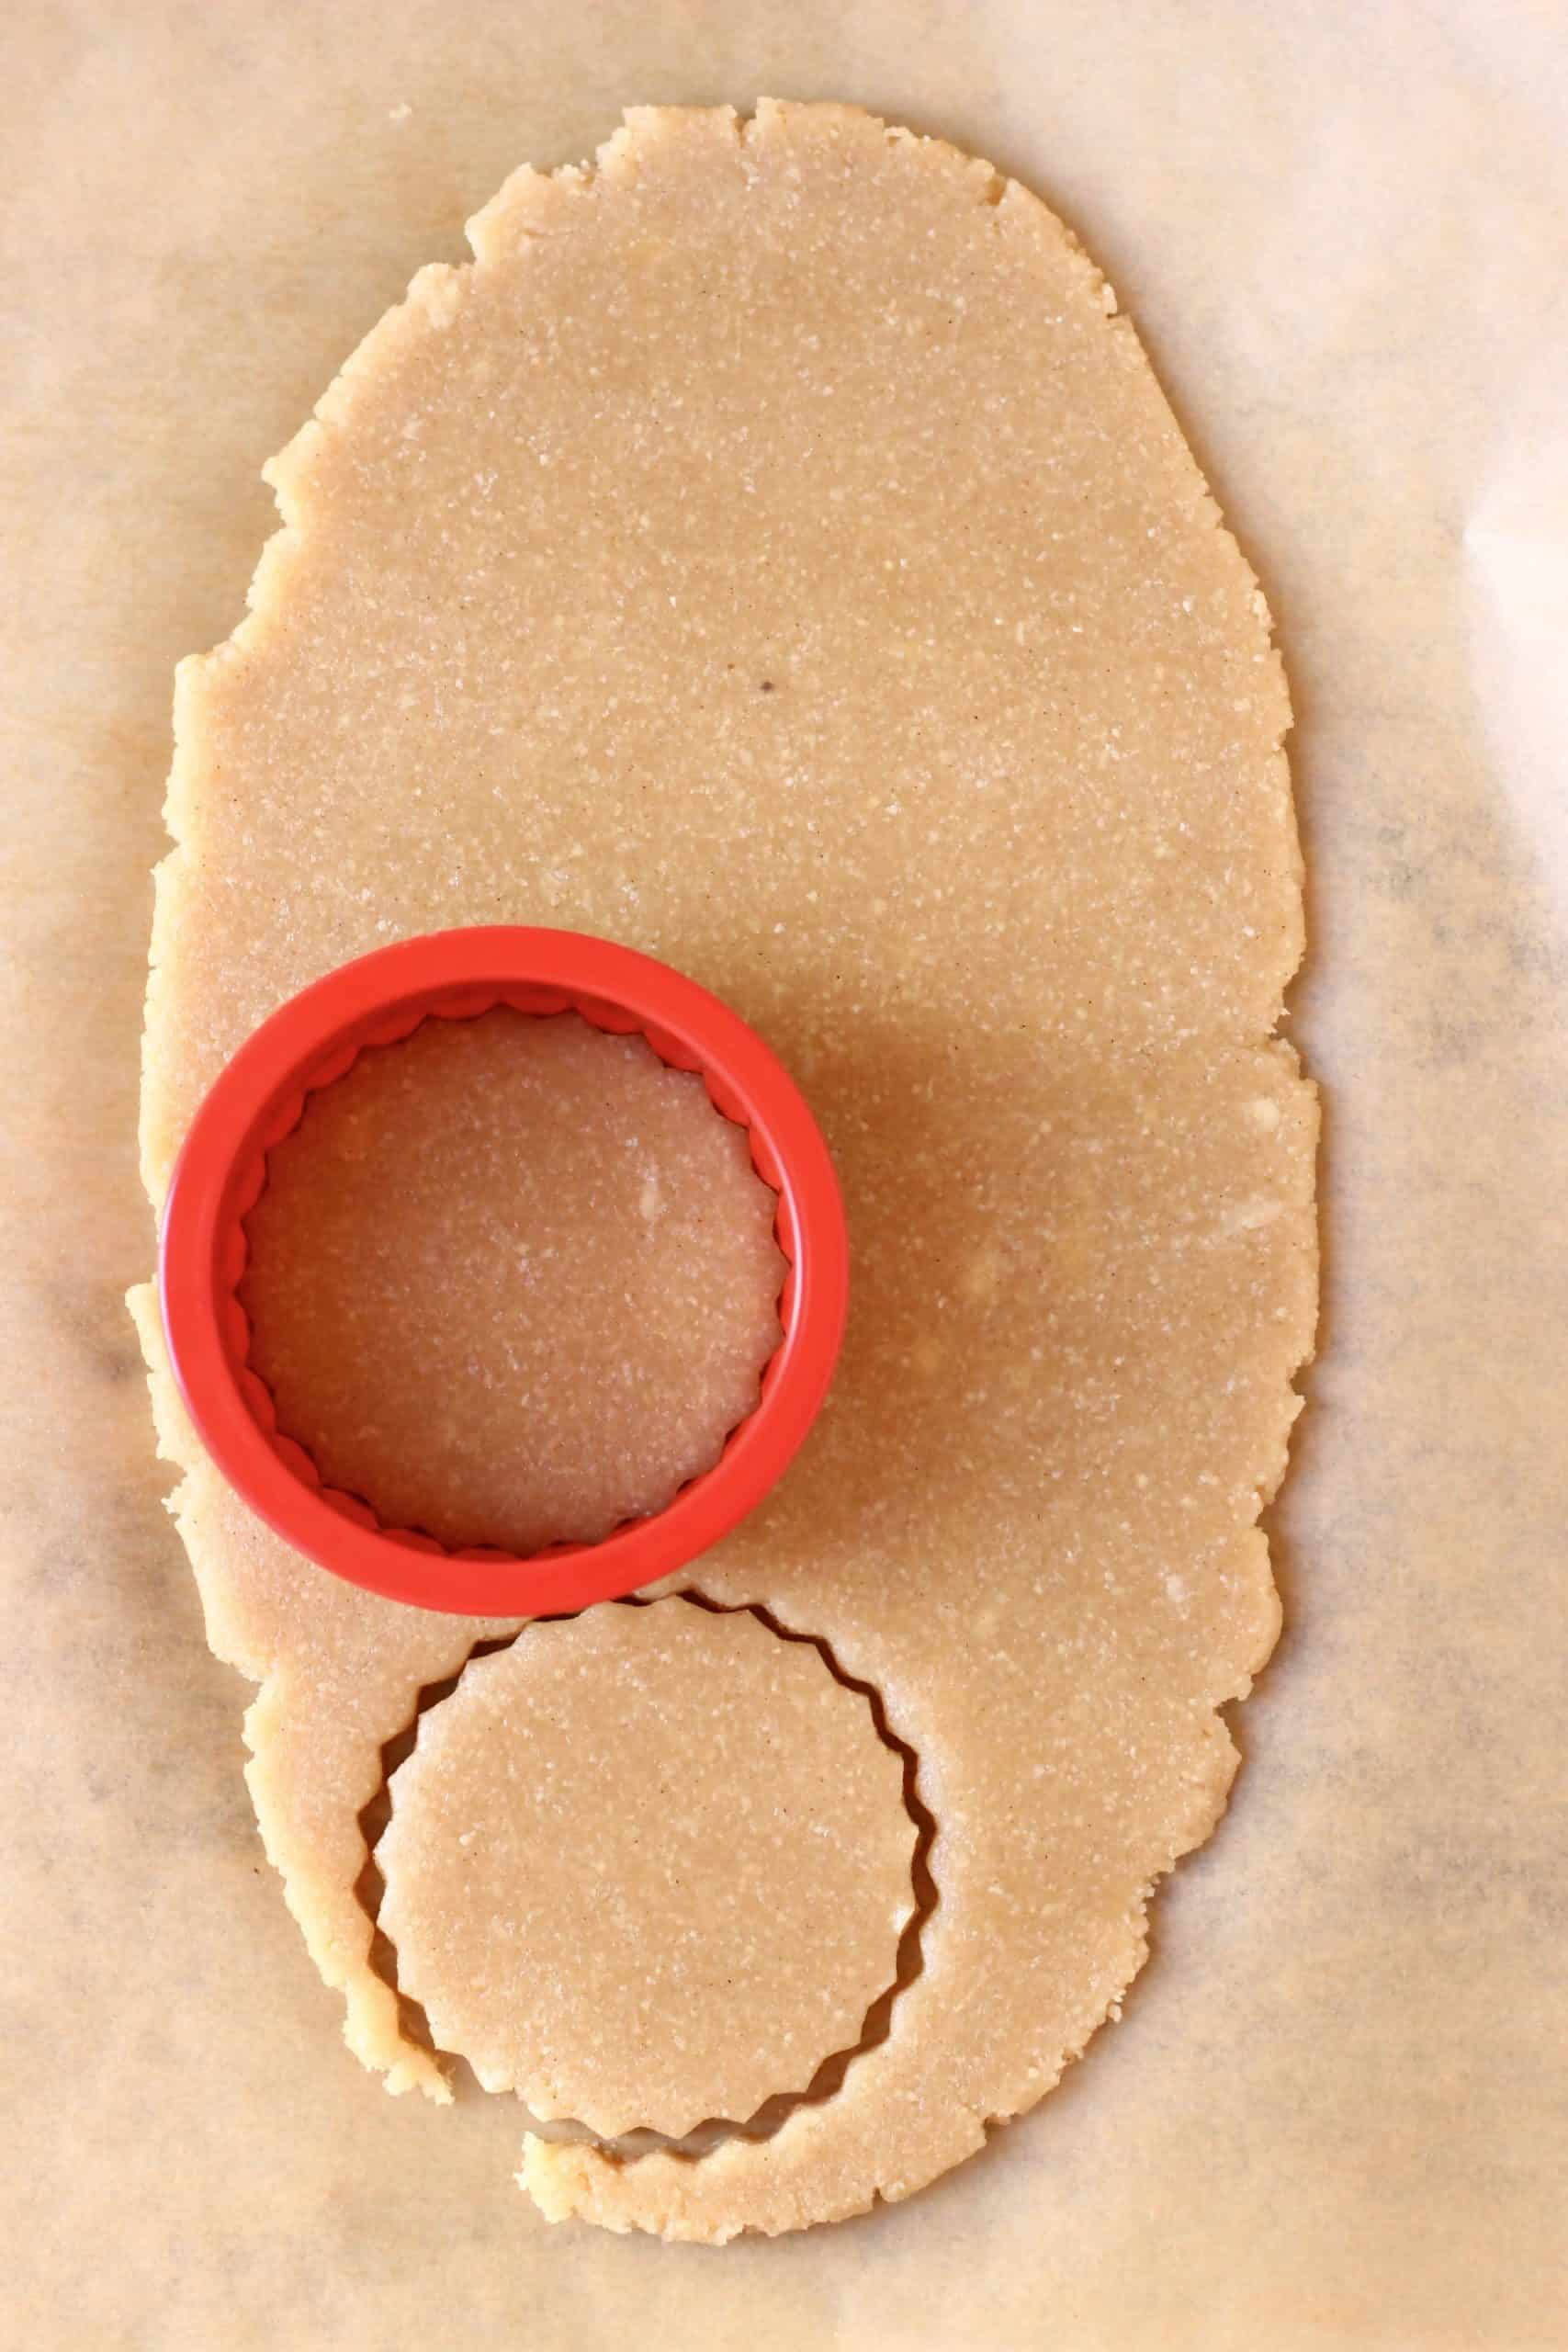 Raw gluten-free vegan linzer cookie dough rolled out on a sheet of baking paper with a circular cookie cutter cutting out shapes